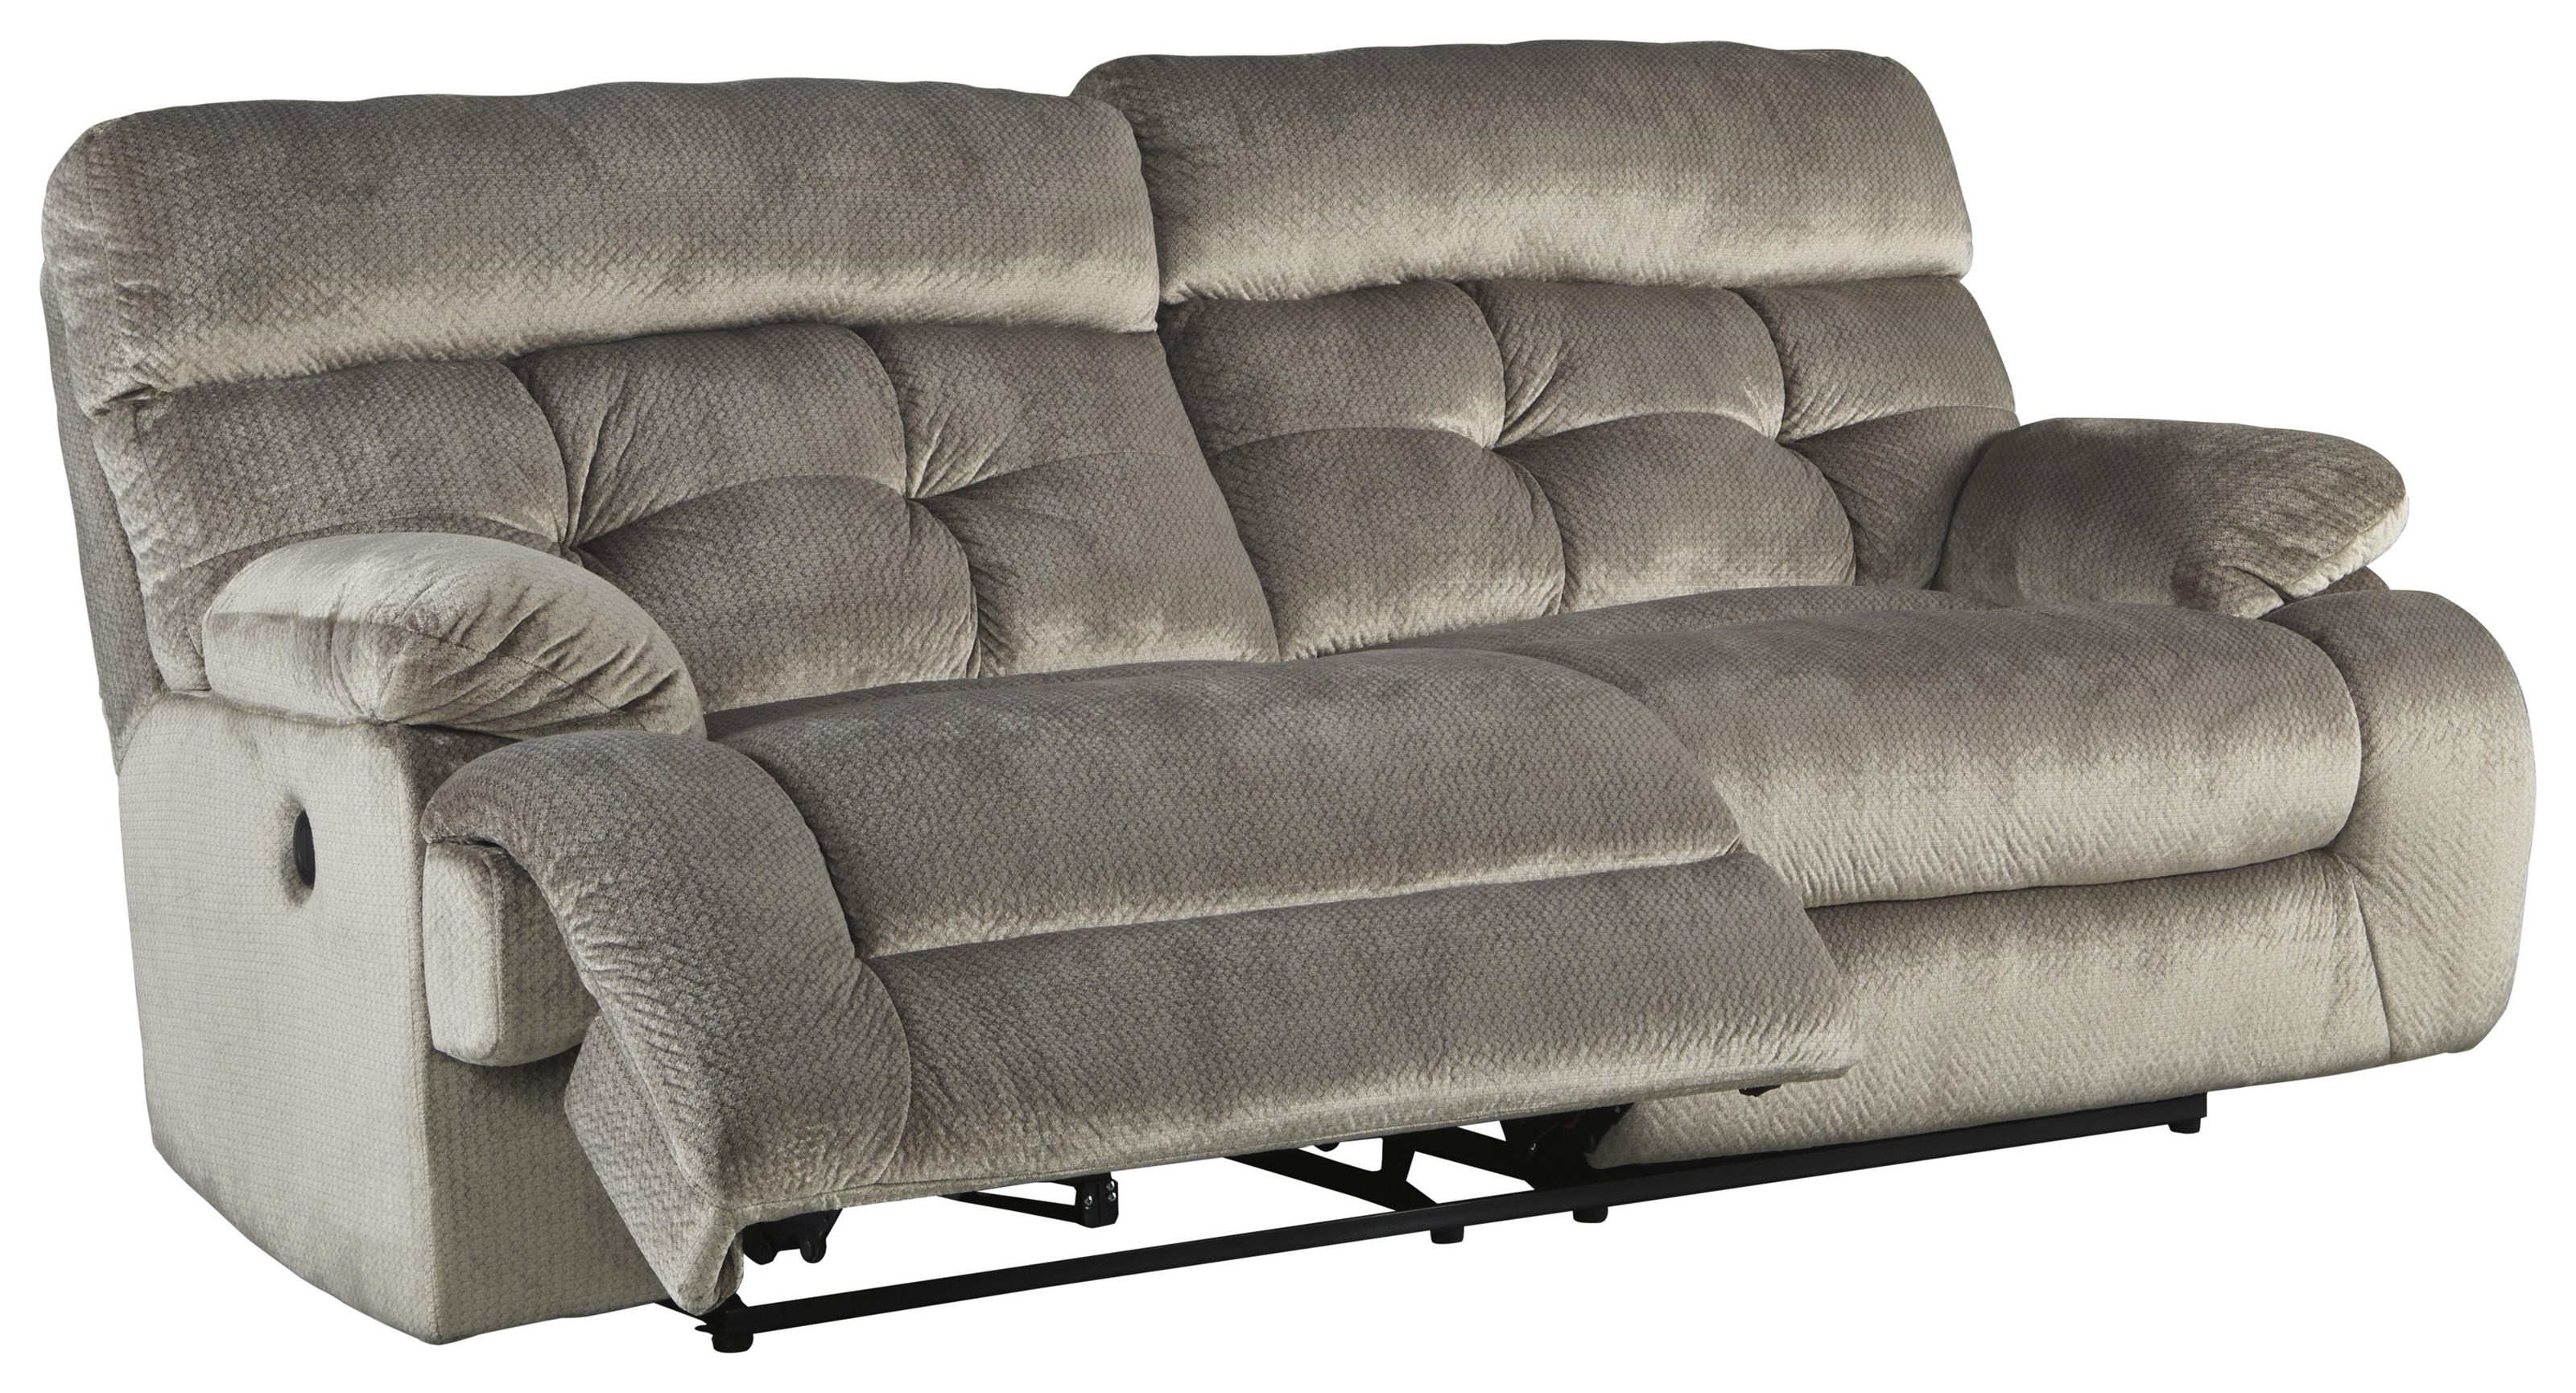 Picture of: Signature Design By Ashley 17701 1770147 Reclining Power Sofa Furniture And Appliancemart Reclining Sofas